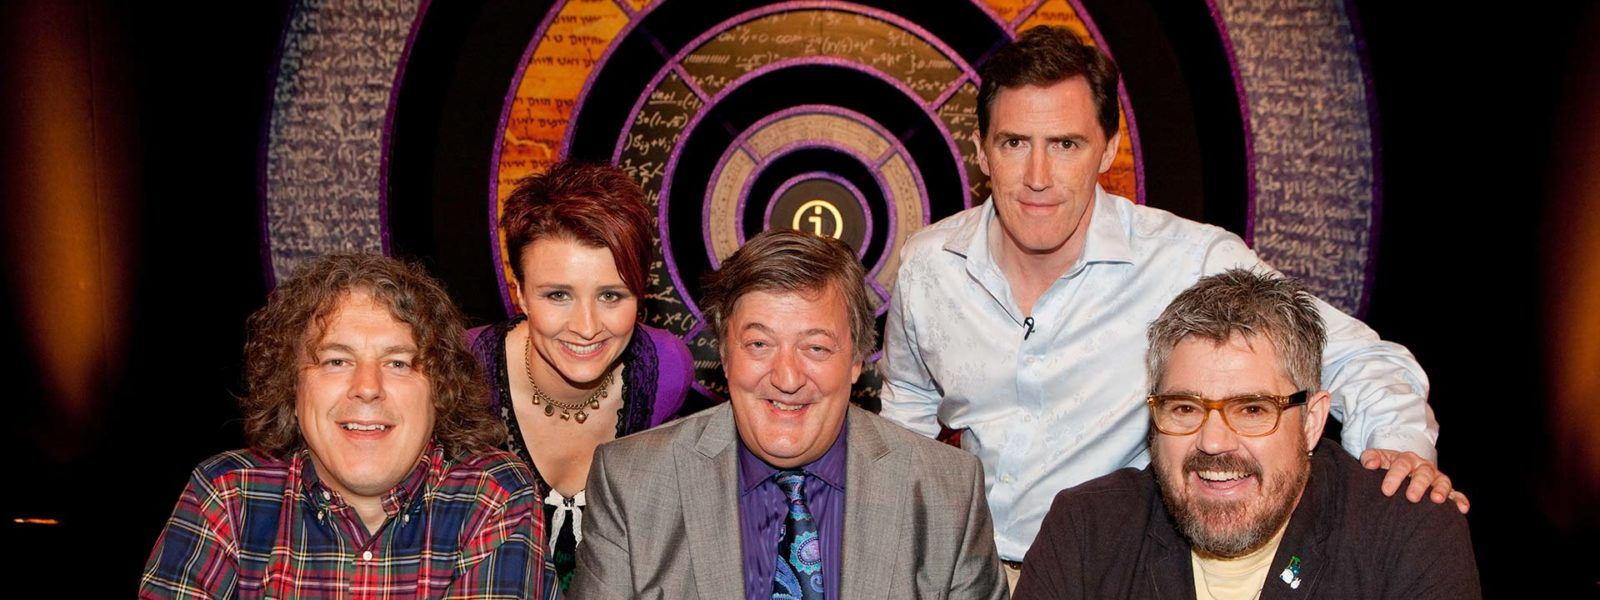 qi season 12 episode 3